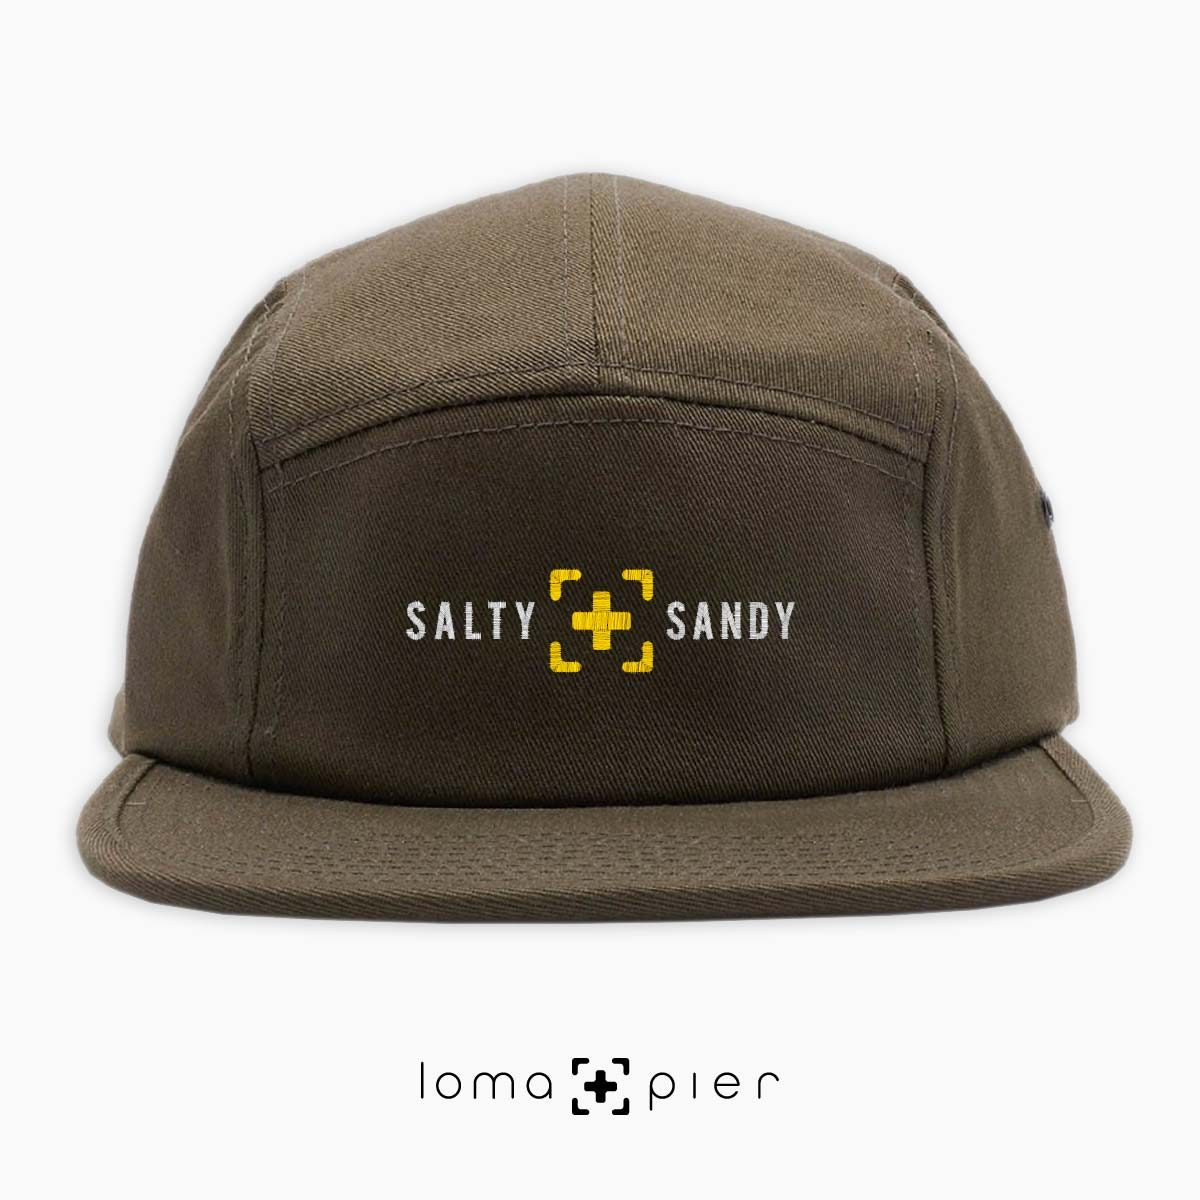 SALTY+SANDY beach 5-panel hat in olive green by loma+pier hat store